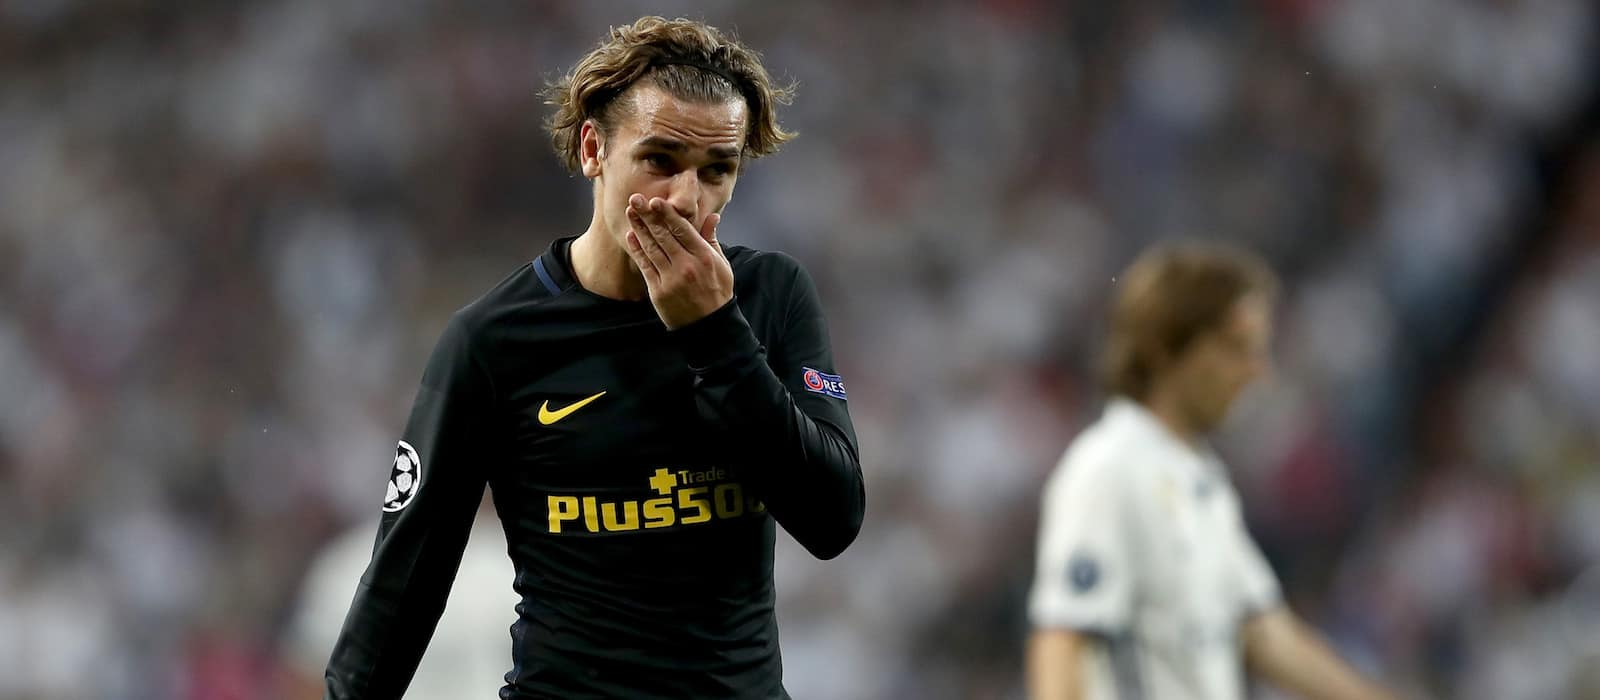 From Spain: Zinedine Zidane wants Antoine Griezmann as his first Manchester United signing